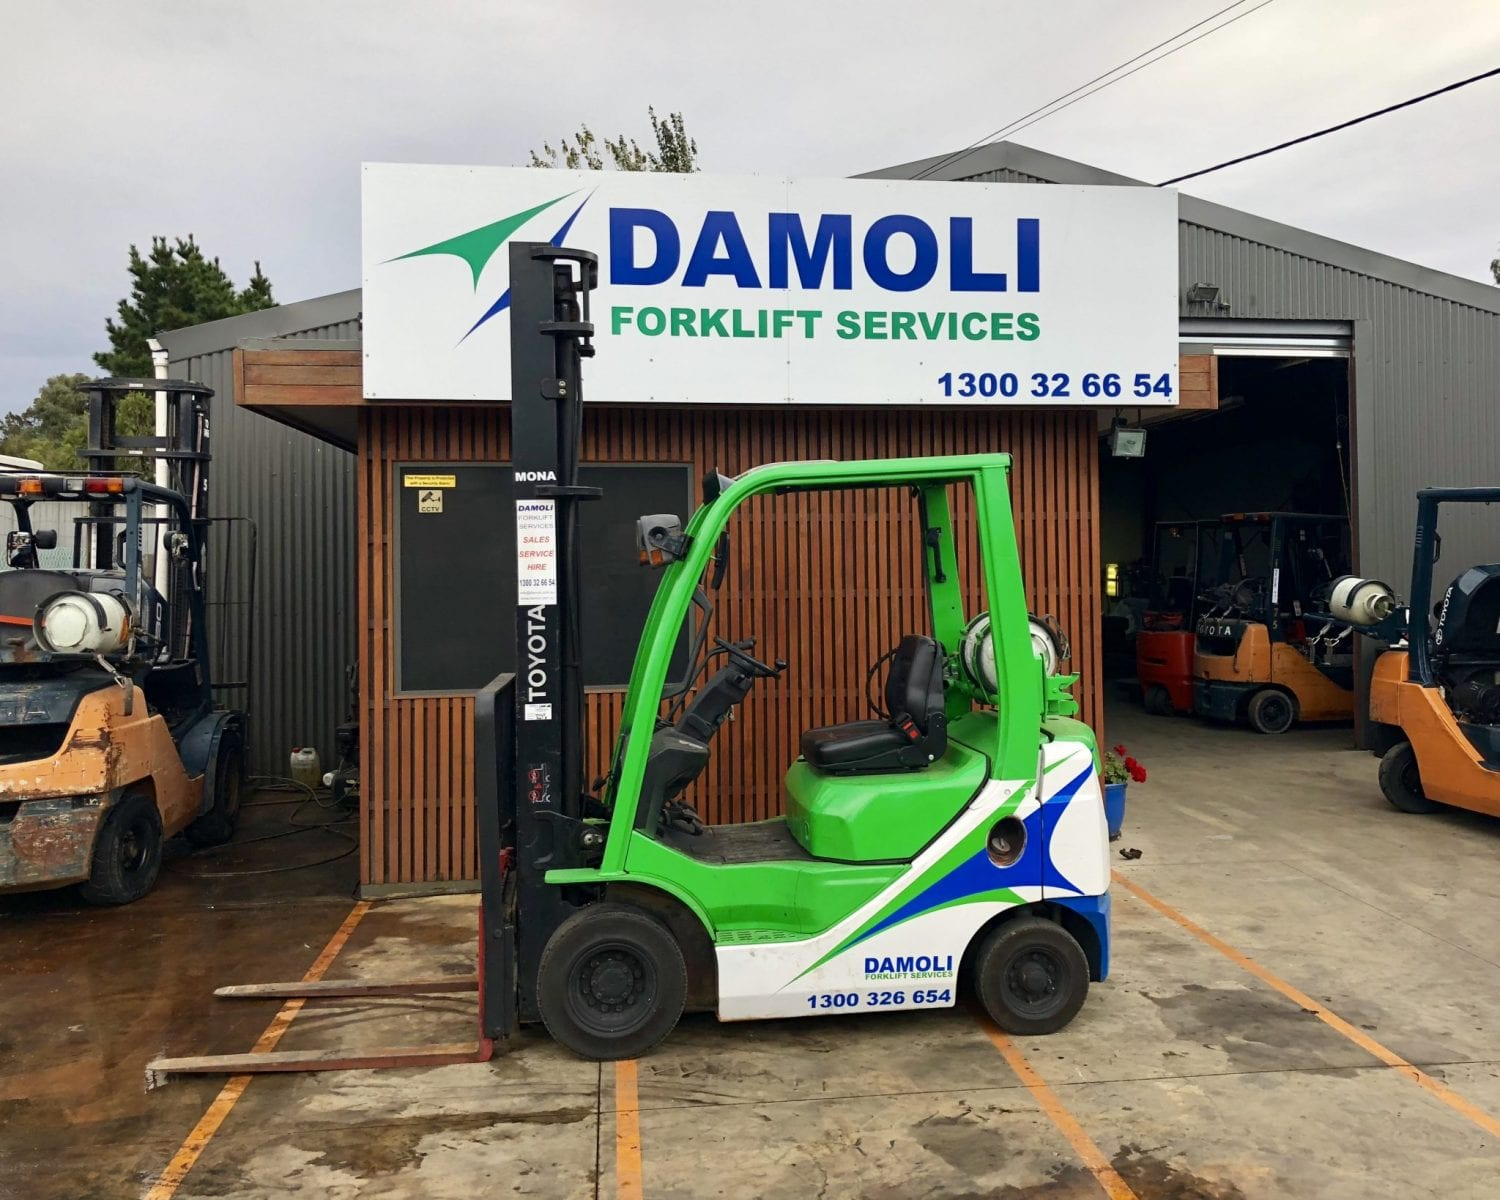 Container Mast Toyota Forklift, On-site Servicing and Maintenance included in Weekly Hire Price, Side Shift, Fork Positioner, Toyota Forklift Hire Campbellfield, Toyota Forklift Hire CBD, Toyota Forklift Hire Dandenong, Toyota Forklift Hire Geelong, Toyota Forklift Hire Laverton, Toyota Forklift Hire Melbourne, Toyota Forklift Hire Melton, Toyota Forklift Hire Victoria, Toyota Forklift Hire Werribee, Toyota Forklift Hire Derrimut, Toyota Forklift Hire Sunshine, Toyota Forklift Hire Maribyrnong, Toyota Forklift Hire Essendon, Toyota Forklift Hire Moonee Ponds, Toyota Forklift Hire Coburg, Toyota Forklift Hire Airport West, Toyota Forklift Hire Kew, Toyota Forklift Hire Footscray, Toyota Forklift Hire Northcote, Toyota Forklift Hire Thornbury, Toyota Forklift Hire Reservoir, Toyota Forklift Hire Thomastown, Toyota Forklift Hire Epping, Toyota Forklift Hire South Morang, Toyota Forklift Hire Keysborough, Toyota Forklift Hire Ringwood, Toyota Forklift Hire Bayswater, Toyota Forklift Hire Balwyn, Toyota Forklift Hire Doncaster, Toyota Forklift Hire Blackburn, Toyota Forklift Hire Flemington, Toyota Forklift Hire Kensington, Toyota Forklift Hire Fitzroy, Toyota Forklift Hire Newport, Toyota Forklift Hire Williamstown, Toyota Forklift Hire Brimbank, Toyota Forklift Hire Altona, Toyota Forklift Hire Hoppers Crossing, Toyota Forklift Hire Tullamarine, Toyota Forklift Hire Keilor, Toyota Forklift Hire Broadmeadows, Toyota Forklift Hire Westmeadows, Toyota Forklift Hire Caroline Springs, Toyota Forklift Hire Tarneit, Toyota Forklift Hire Point Cook, Toyota Forklift Hire Pascoe Vale, Toyota Forklift Hire Glenroy, Toyota Forklift Hire Gladstone Park, Toyota Forklift Hire Taylors Lakes, Toyota Forklift Hire Sydenham, Toyota Forklift Hire Rockbank, Toyota Forklift Hire Craigieburn, Toyota Forklift Hire Kalkallo, Toyota Forklift Hire Donnybrook